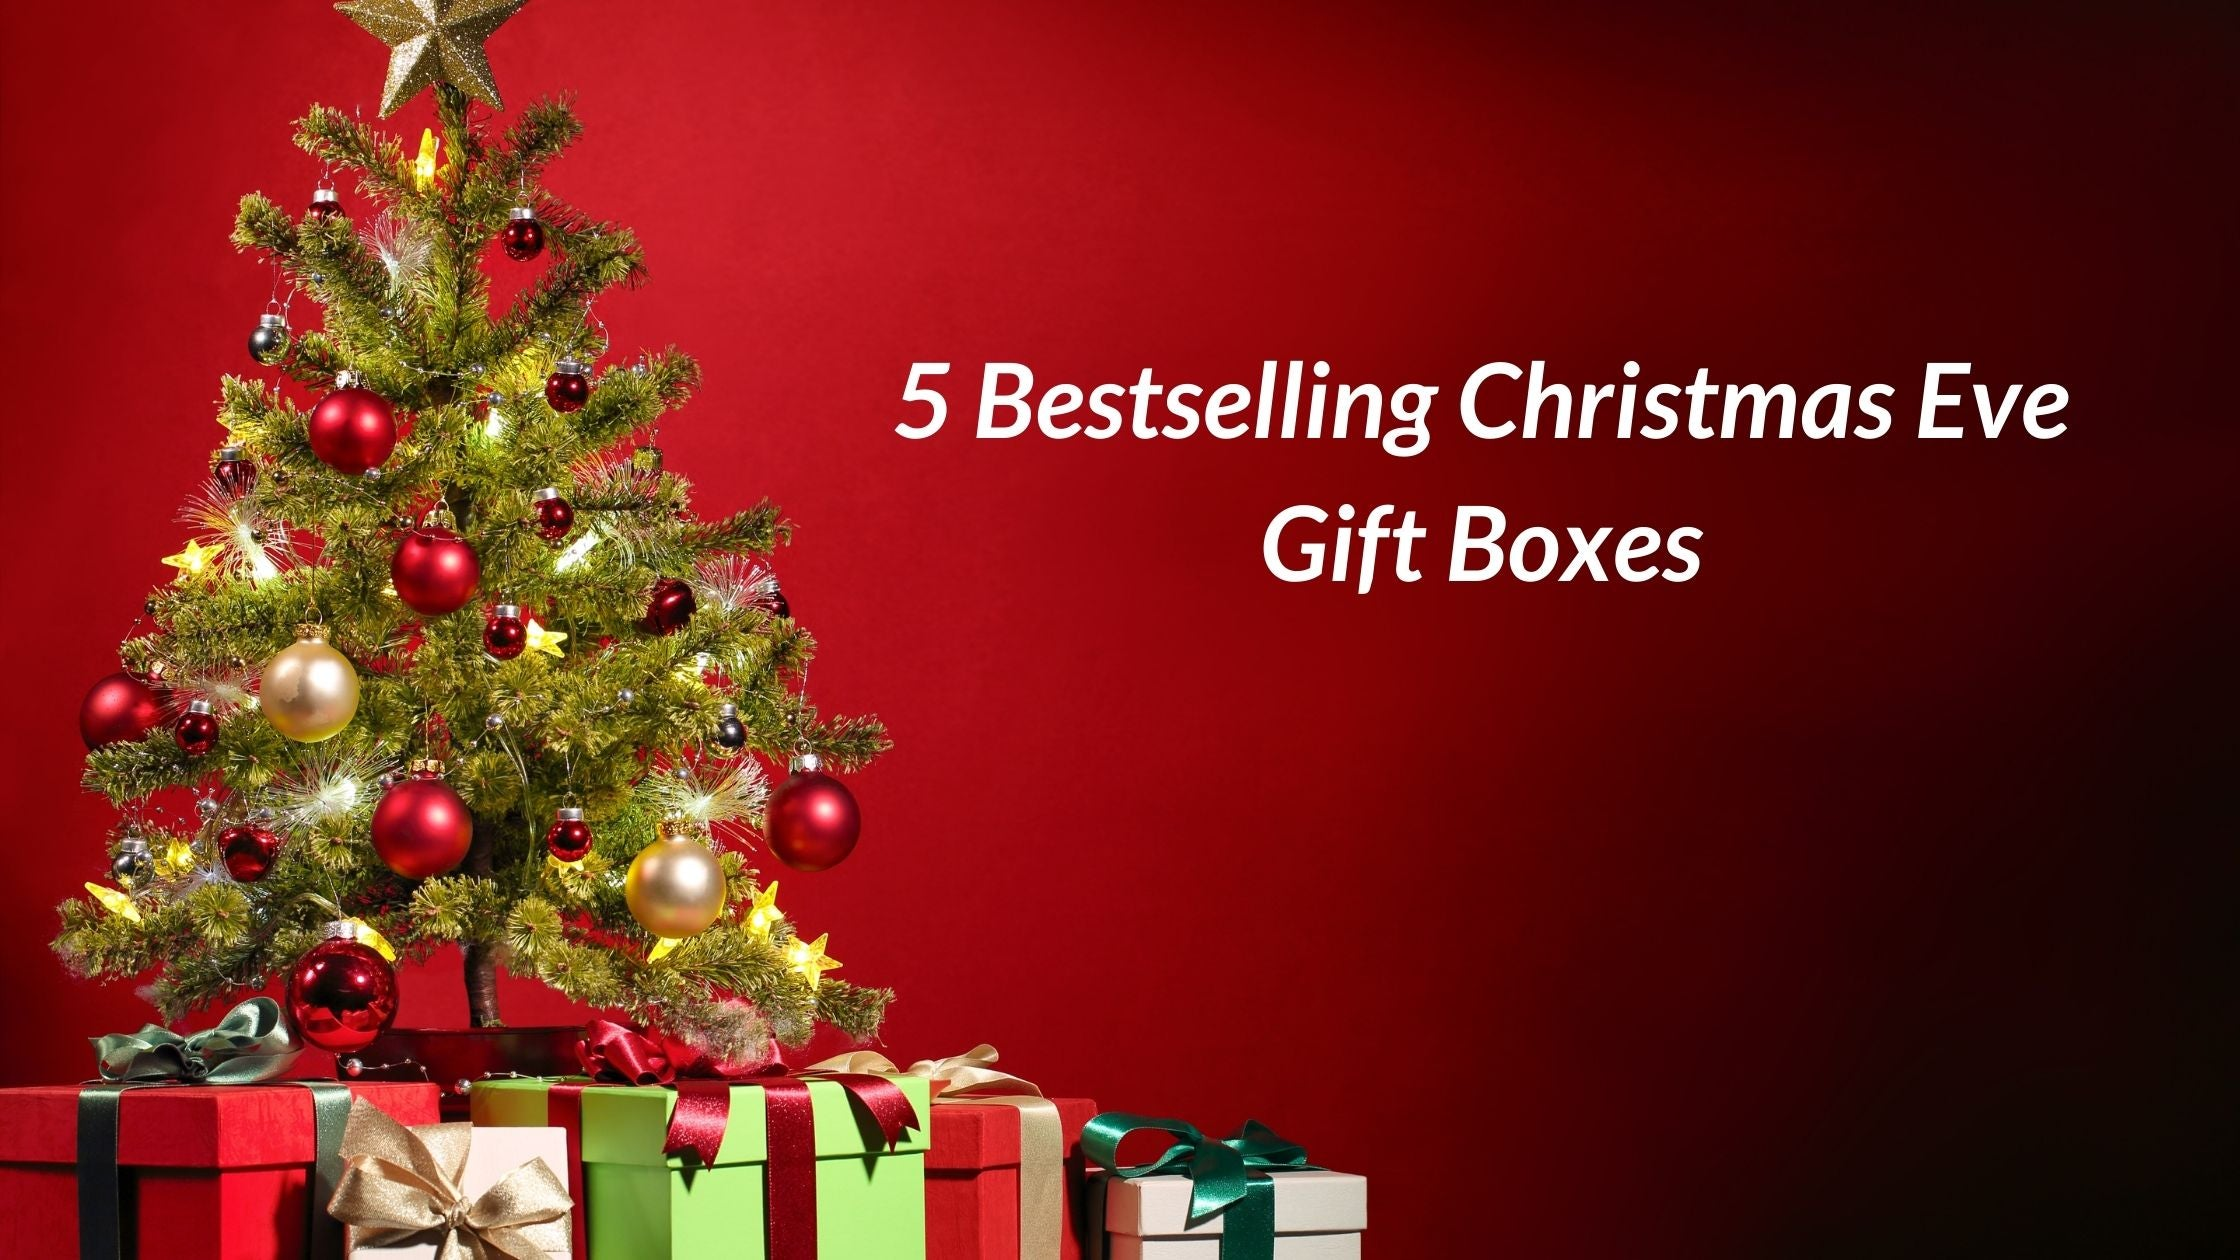 5 Bestselling Christmas Eve Gift Boxes